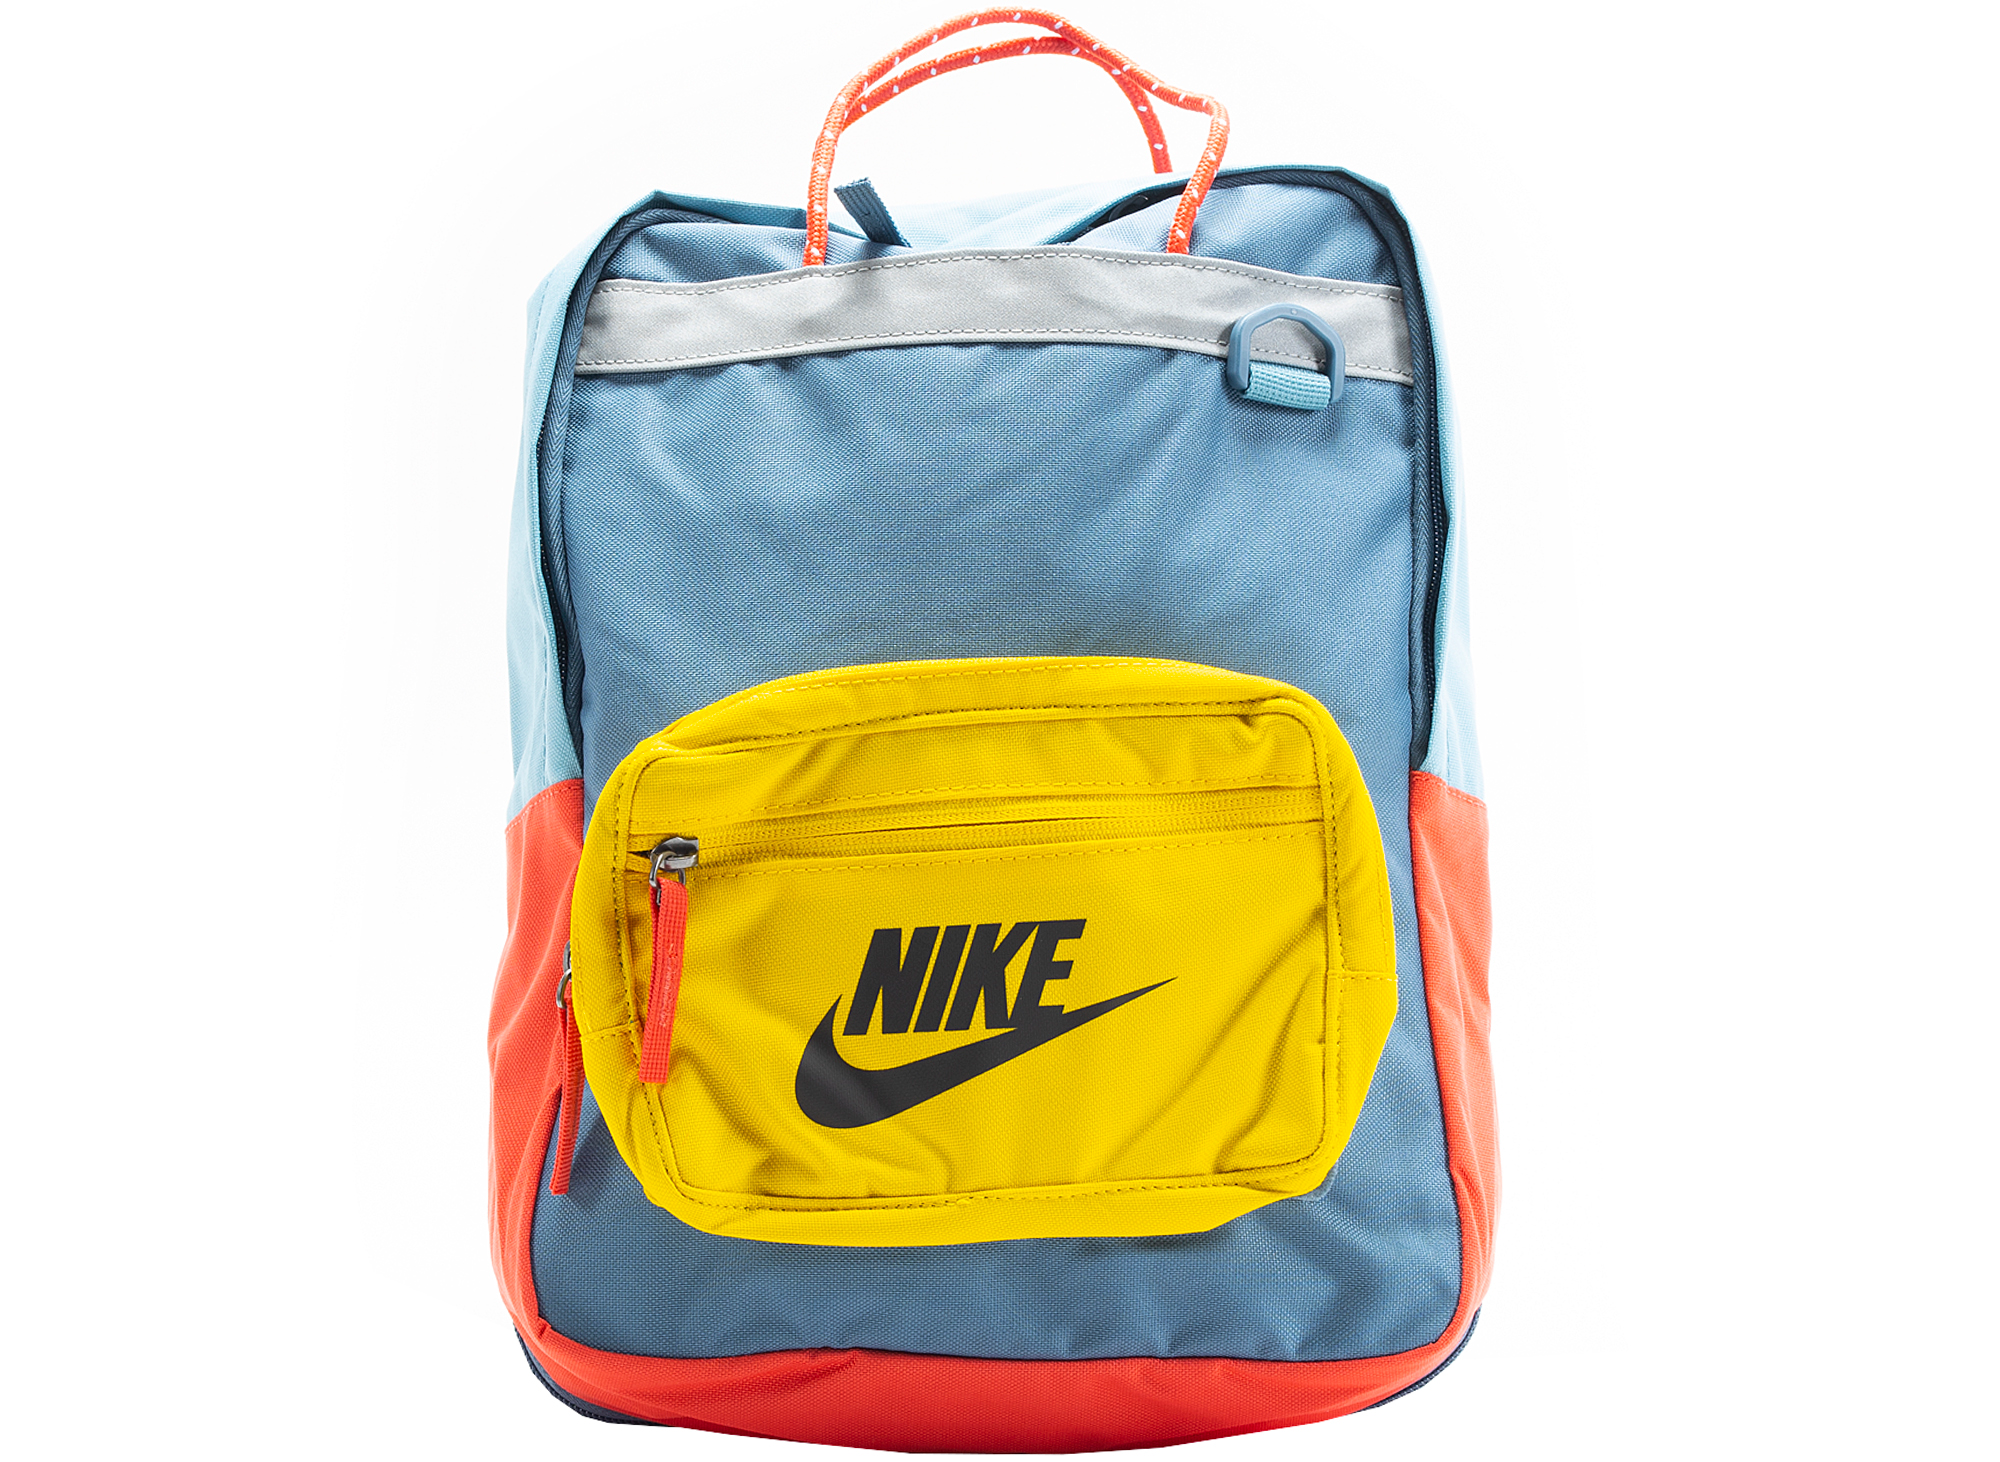 Tanjun Backpack - Oneness Boutique